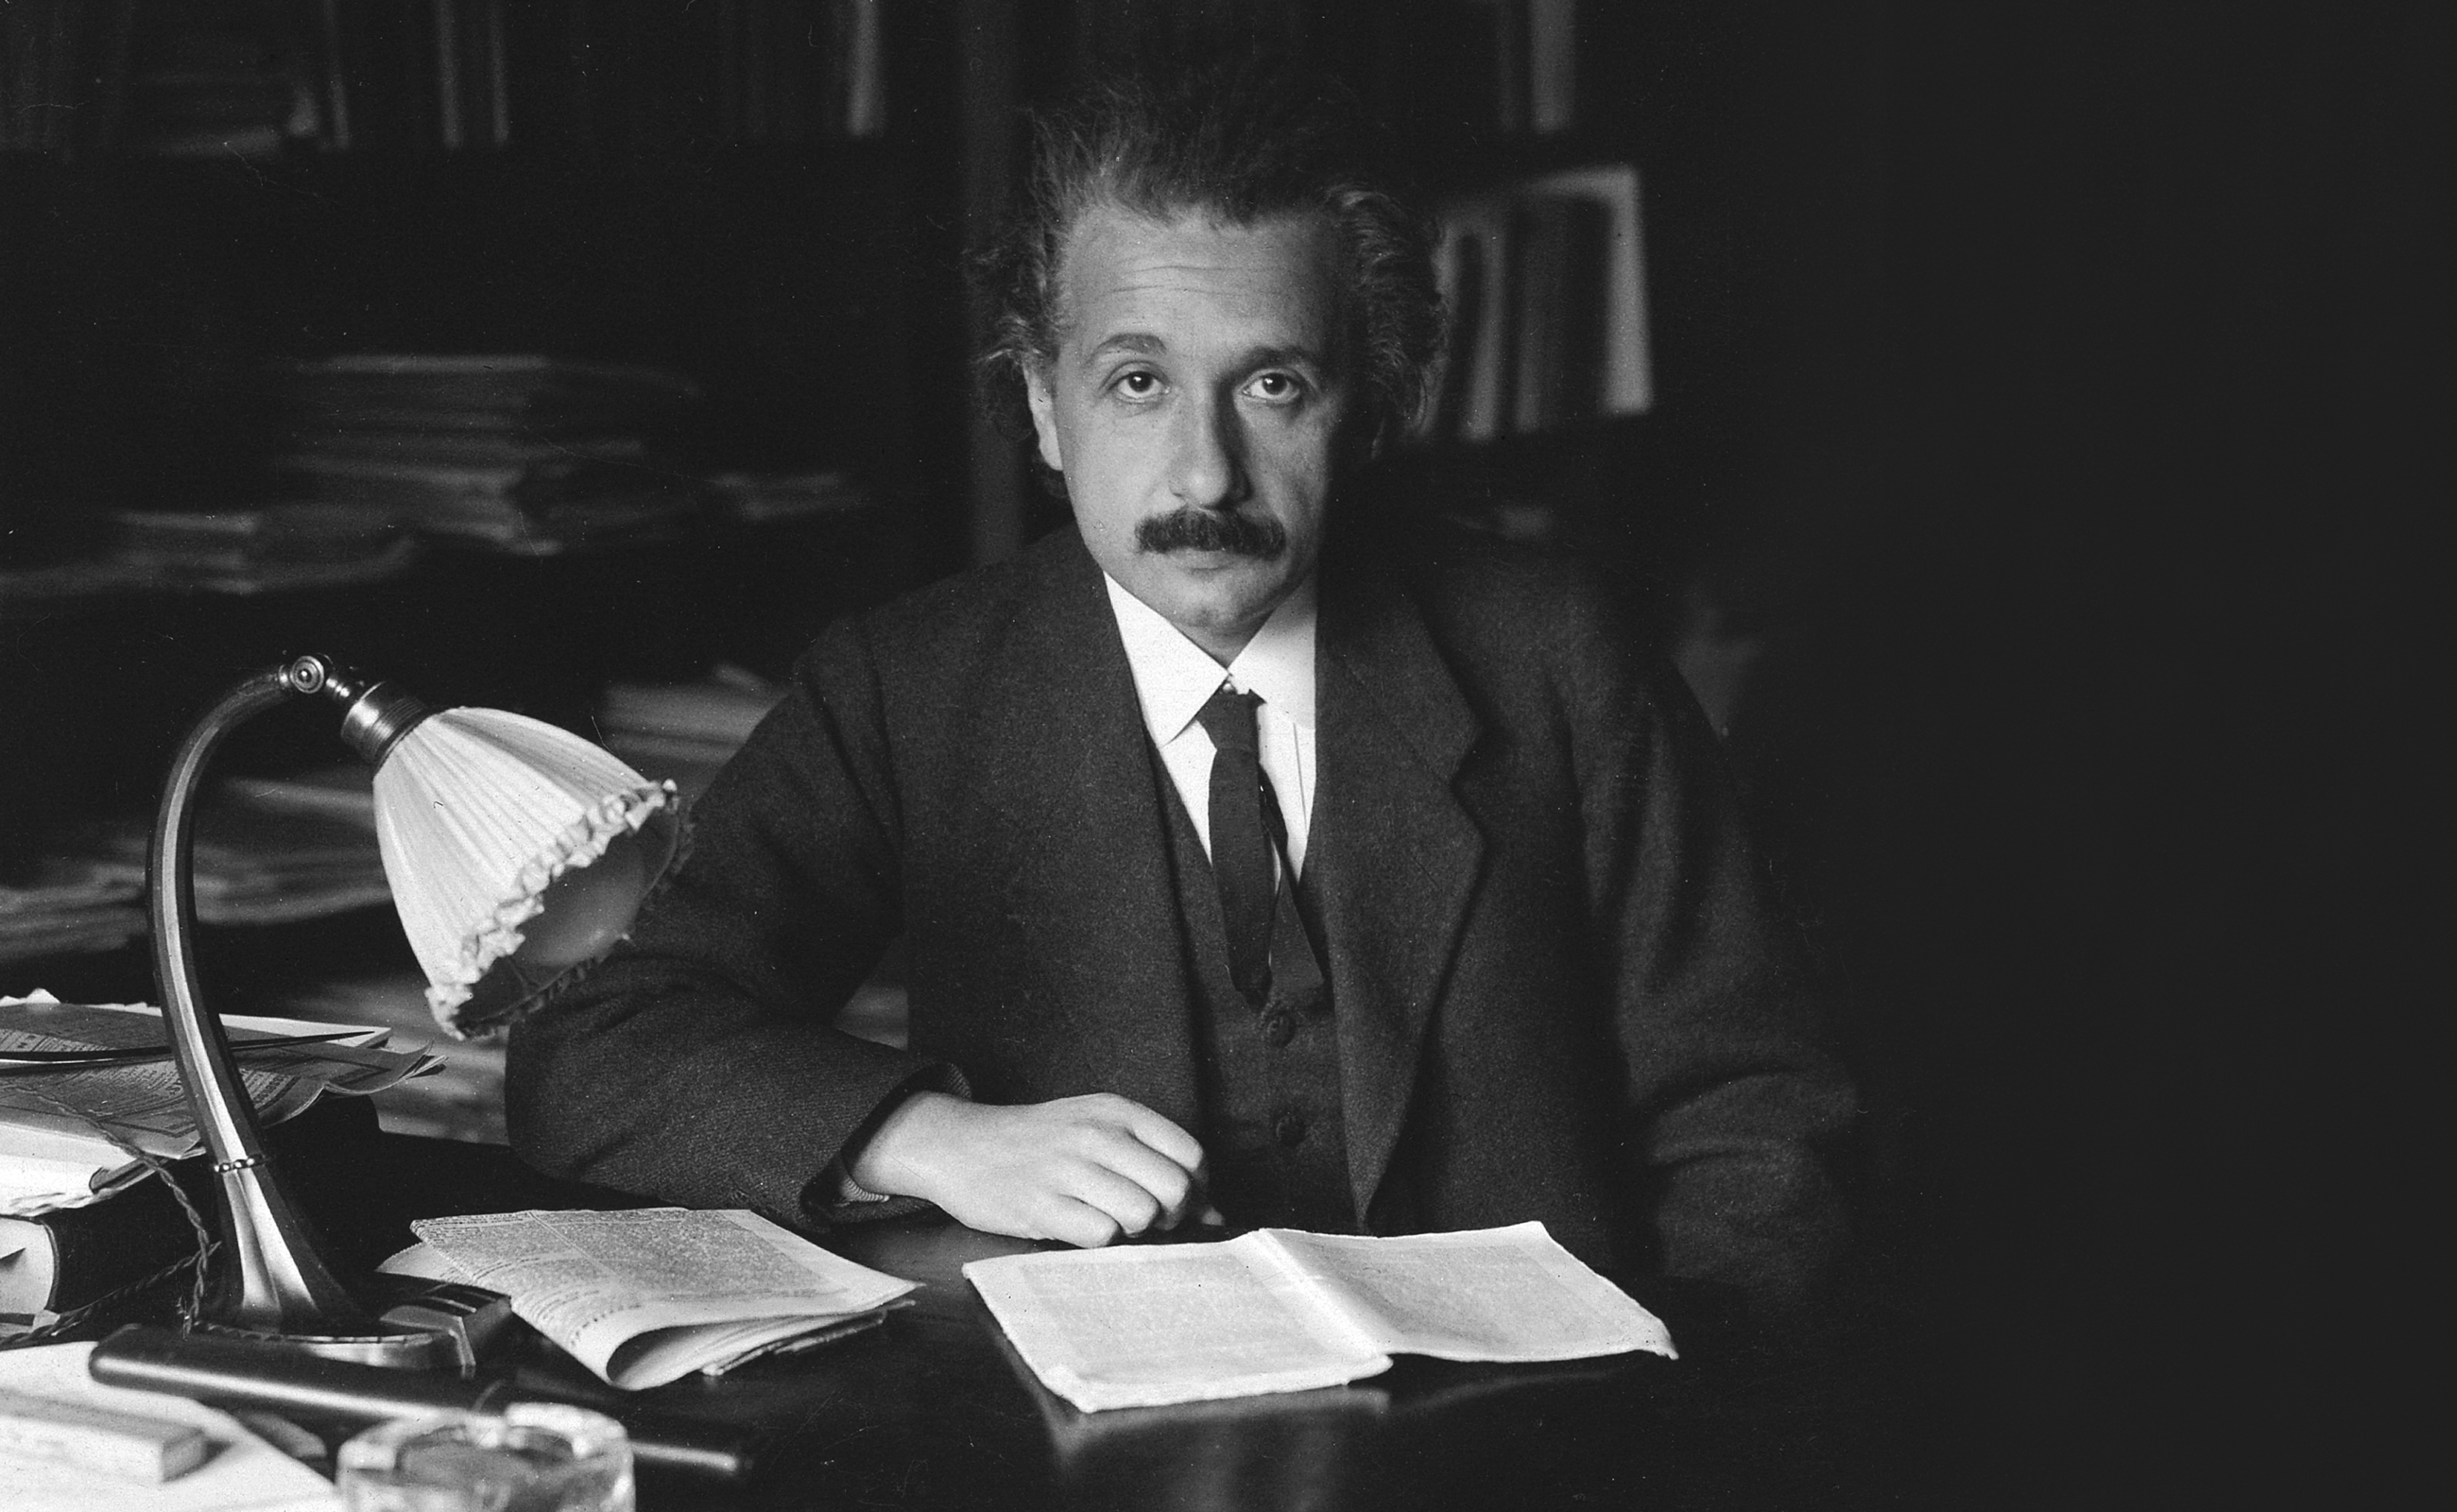 Photograph of Albert Einstein in his office at the University of Berlin, published in the USA in 1920.